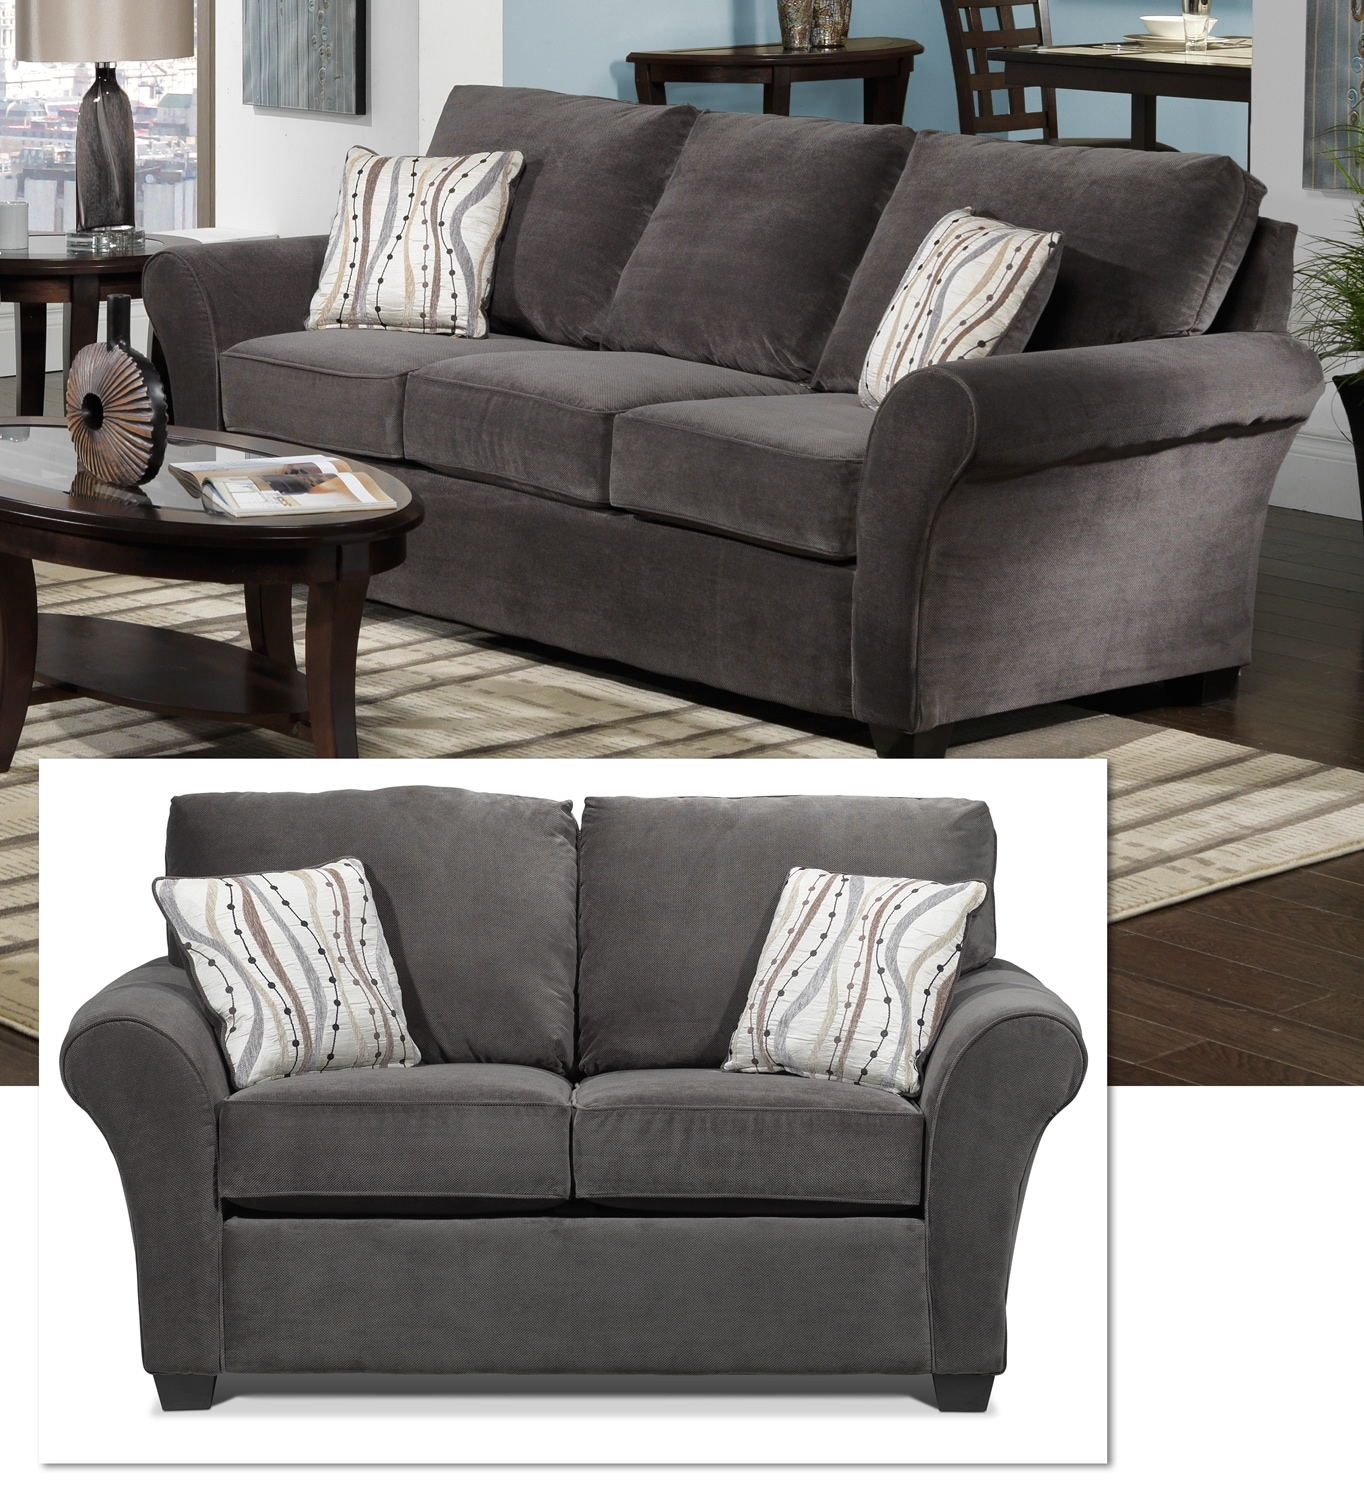 Langley Sofa and Loveseat Set - Charcoal